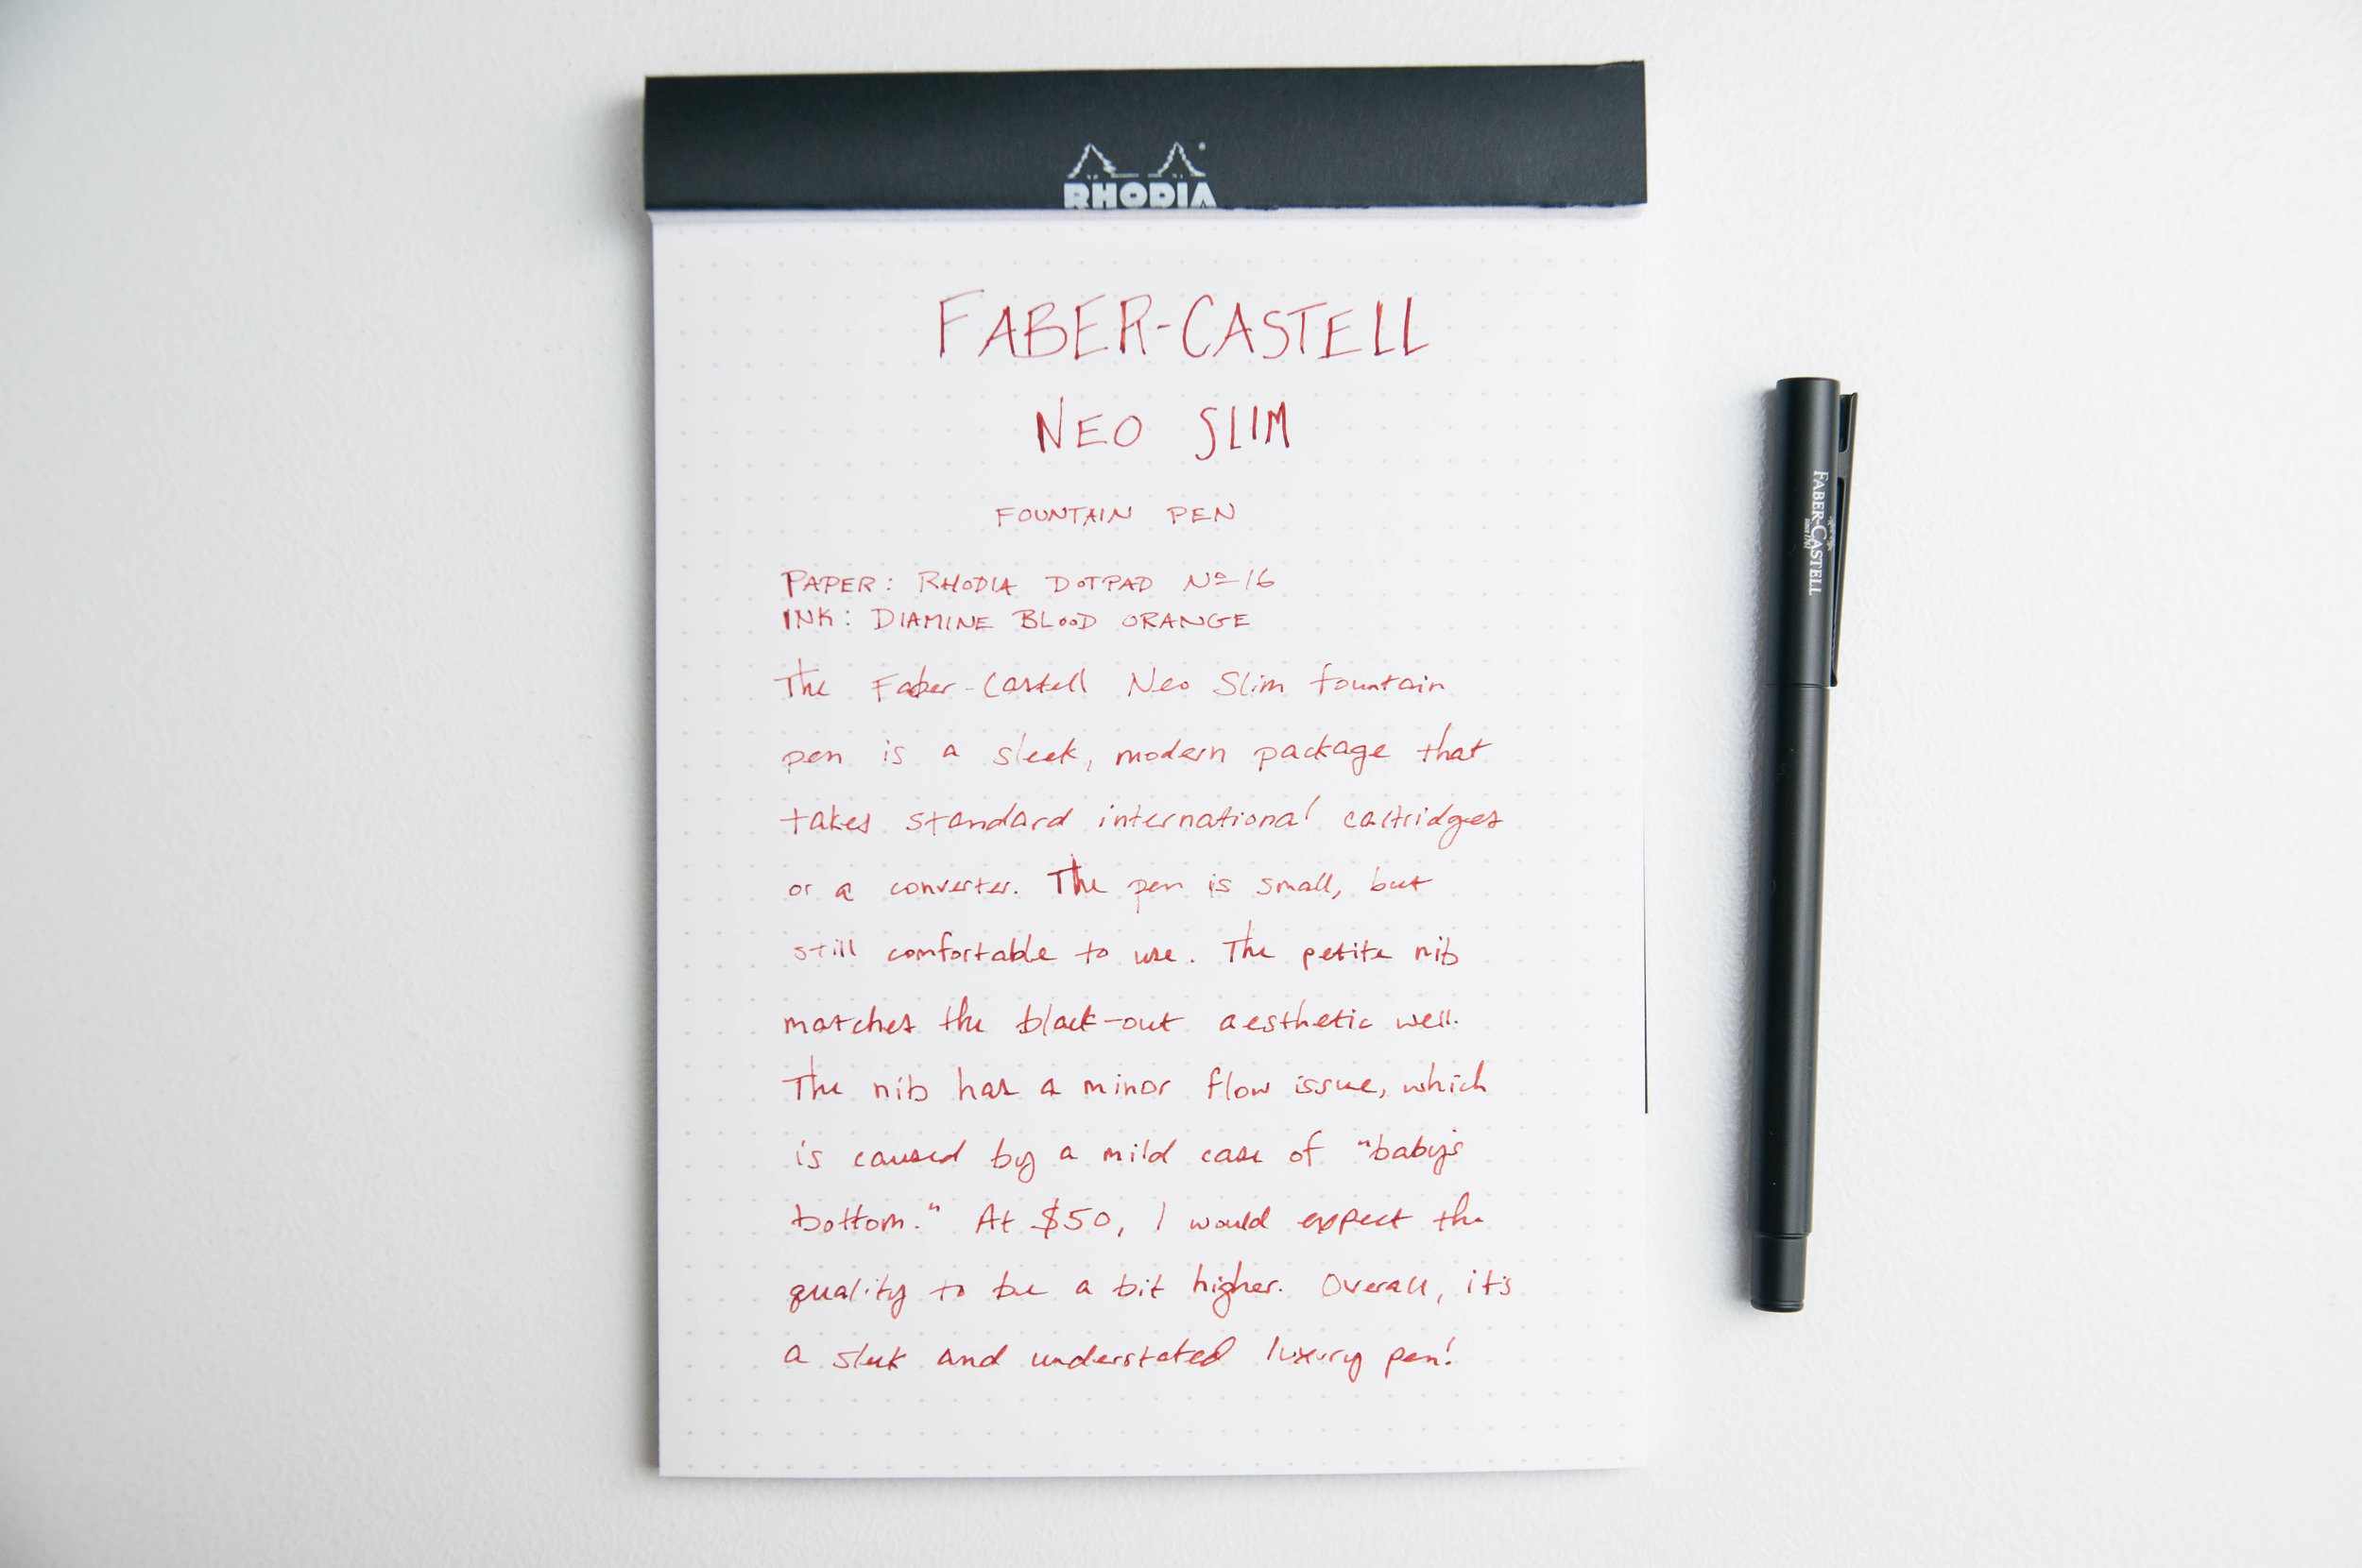 Faber-Castell NEO Slim Fountain Pen Writing